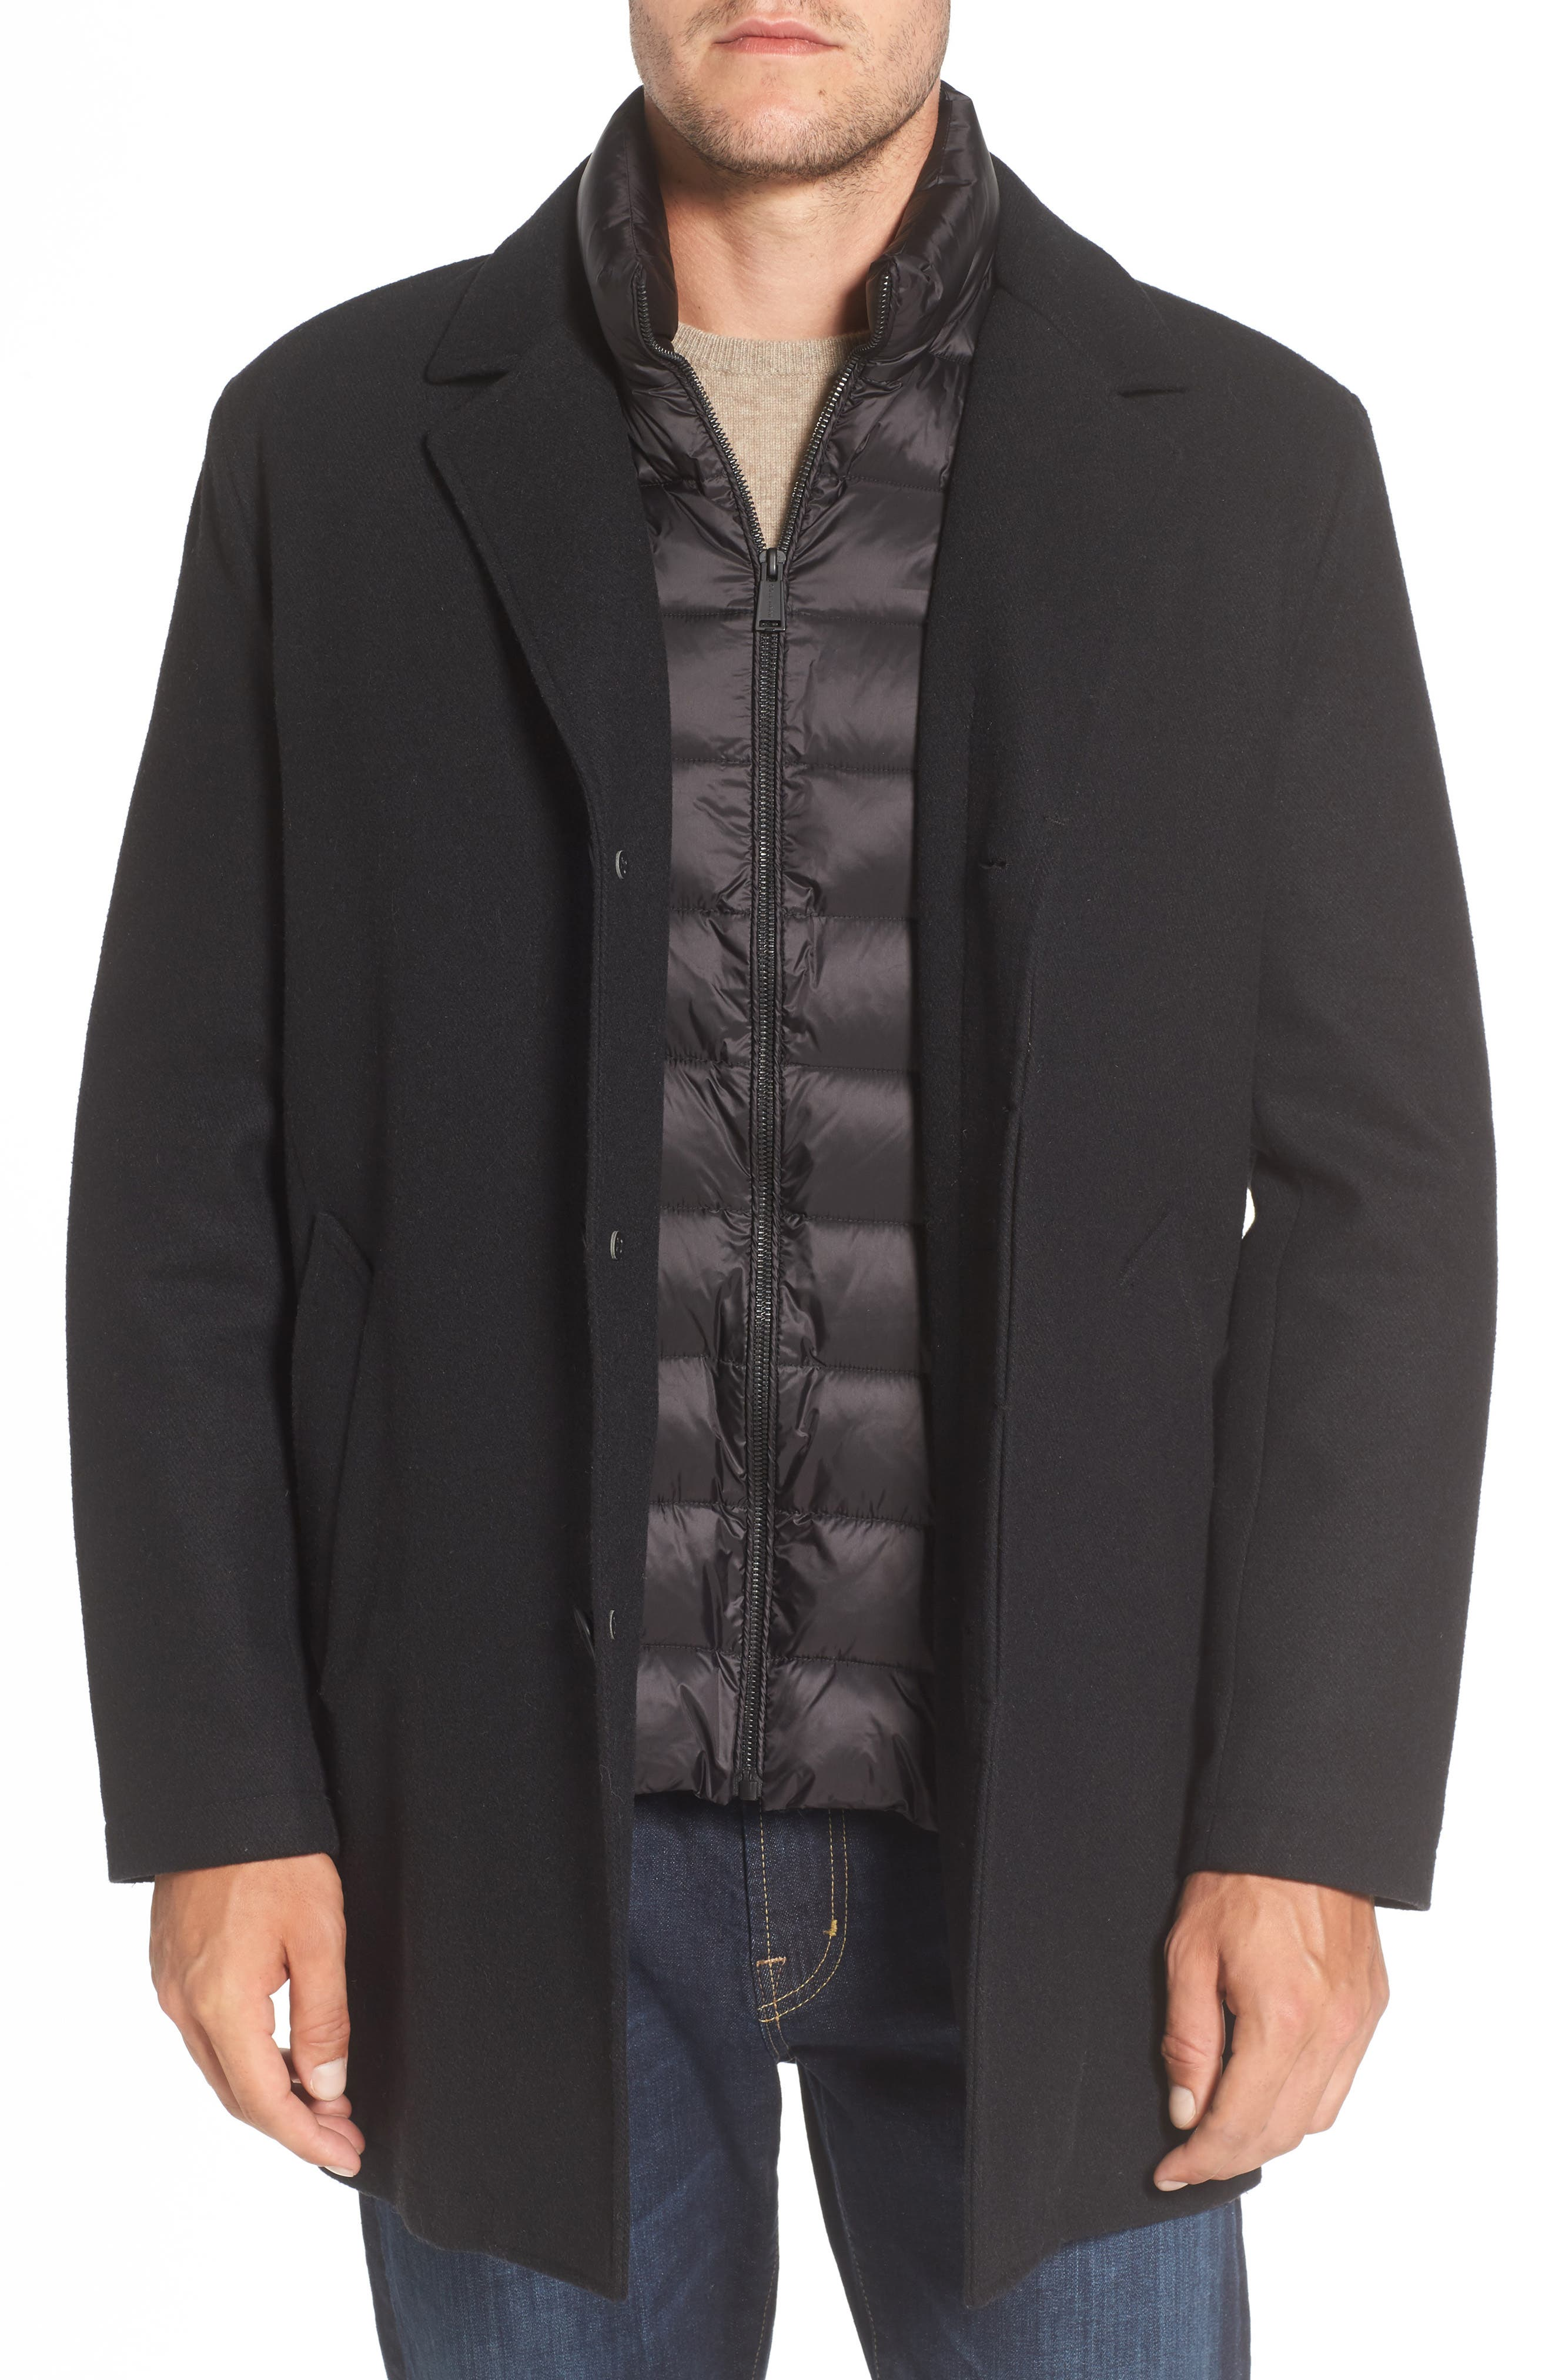 Alternate Image 1 Selected - Cole Haan Water Repellent Jacket with Inset Bib & Faux Fur Lining